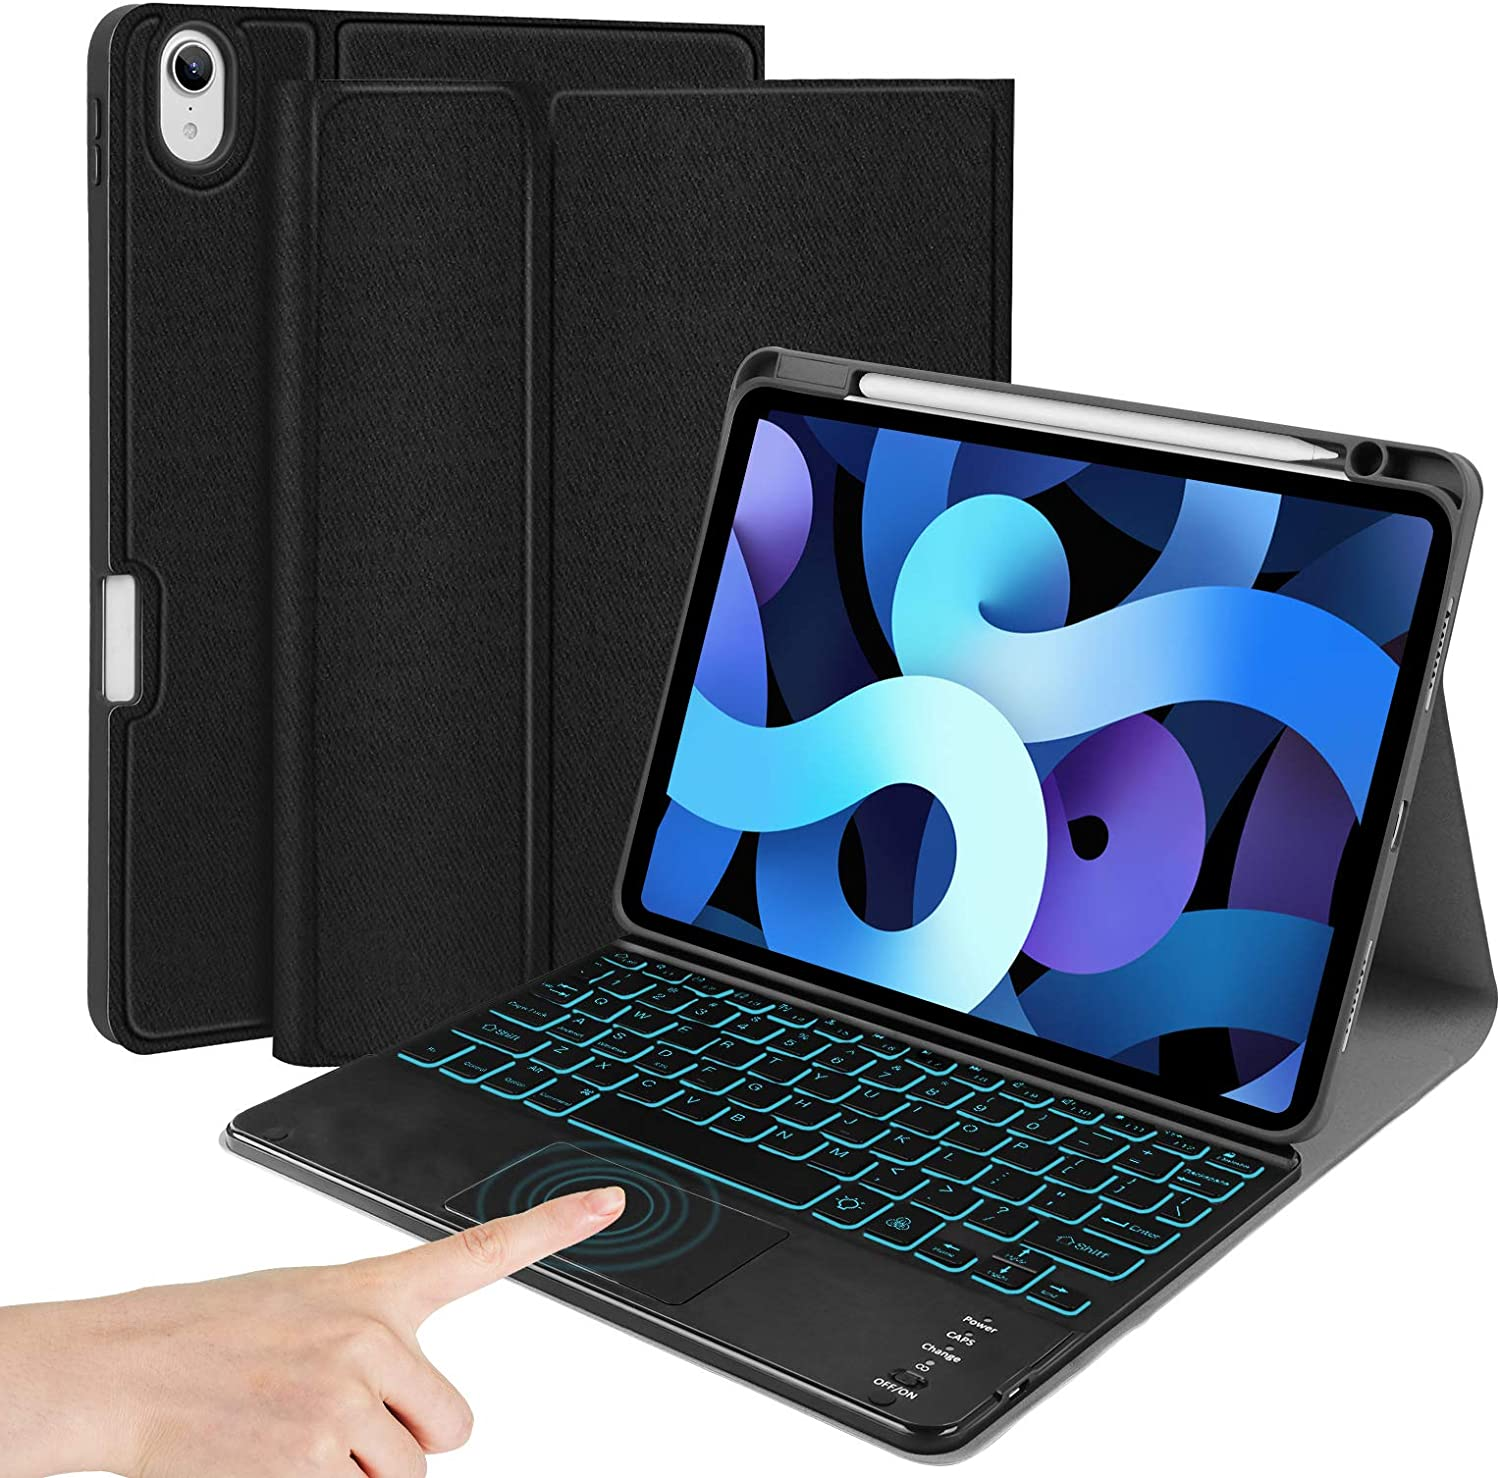 iPad Air 4th Touchpad-Backlit-Keyboard Case - JUQITECH Smart Case with Detachable Wireless BT Keyboard for iPad Air 4 Generation 10.9 2020 Magnetic Flip Stand Cover with Pencil Charging Holder, Black